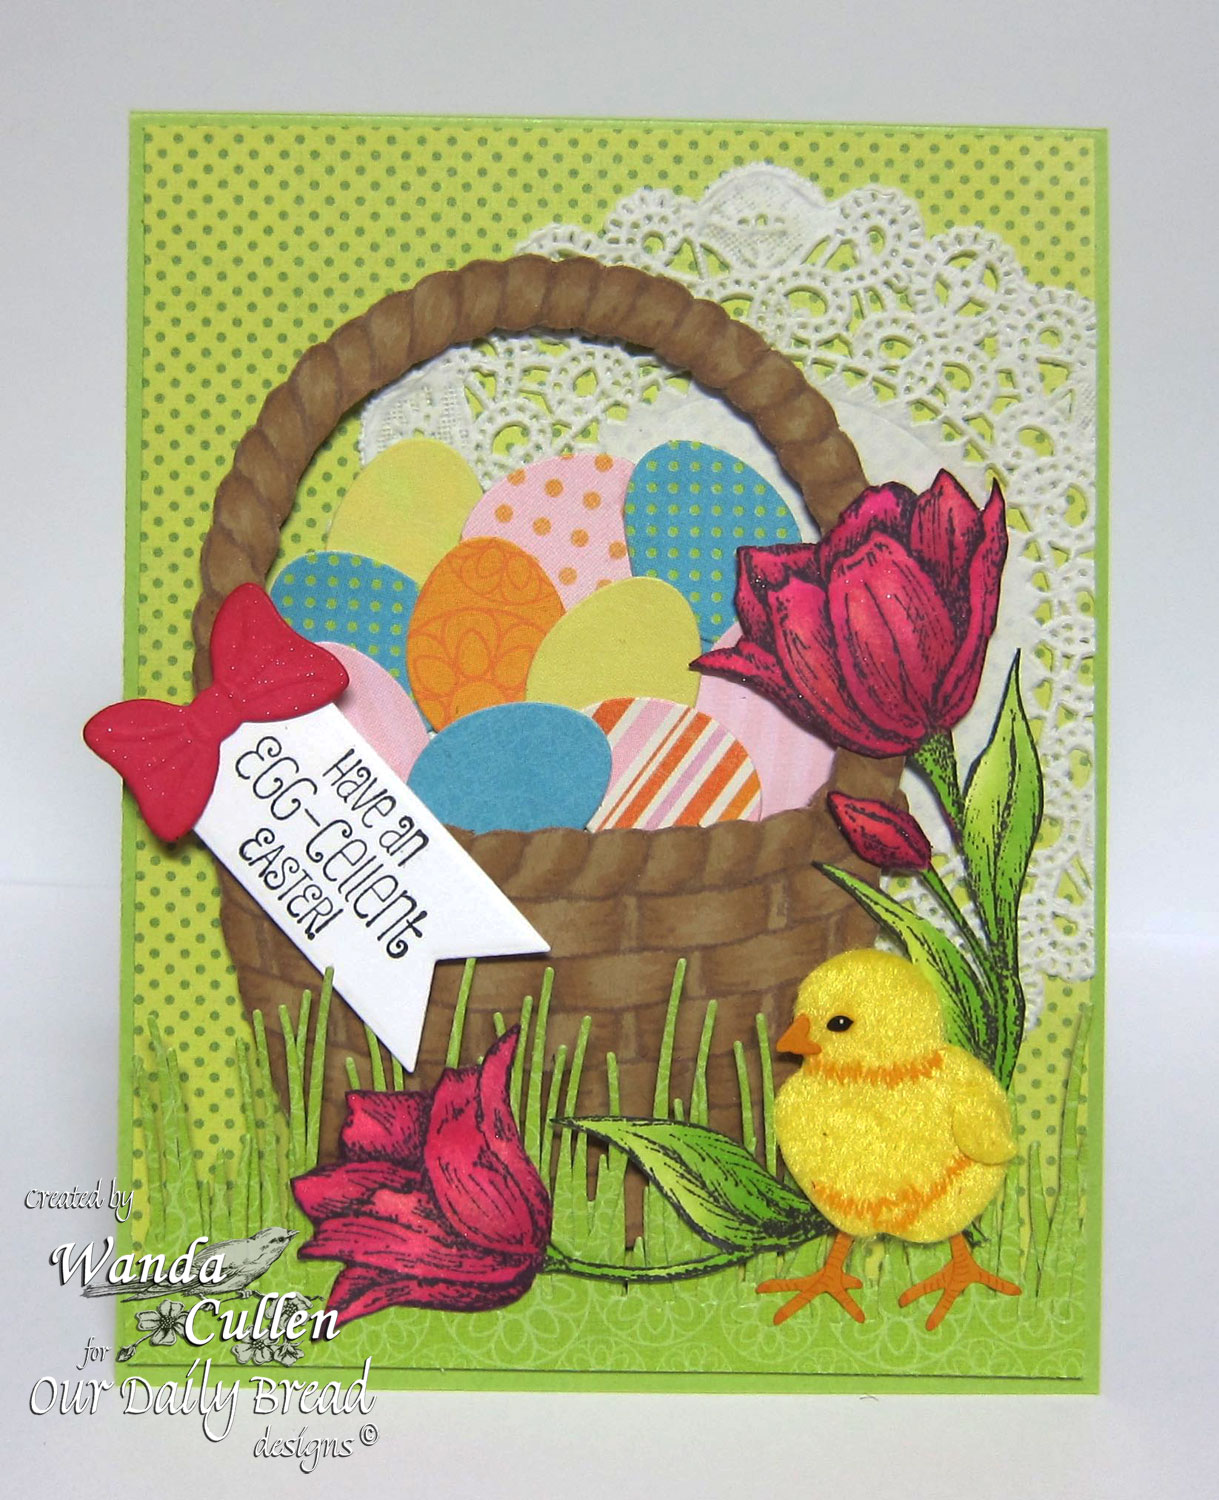 Stamps - Our Daily Bread Designs Basket of Blessings, Tulip Corner, ODBD Custom Peaceful Poinsettias Die, ODBD Custom Grass Border Die, ODBD Custom Eggs Dies, ODBD Custom Pennant Dies